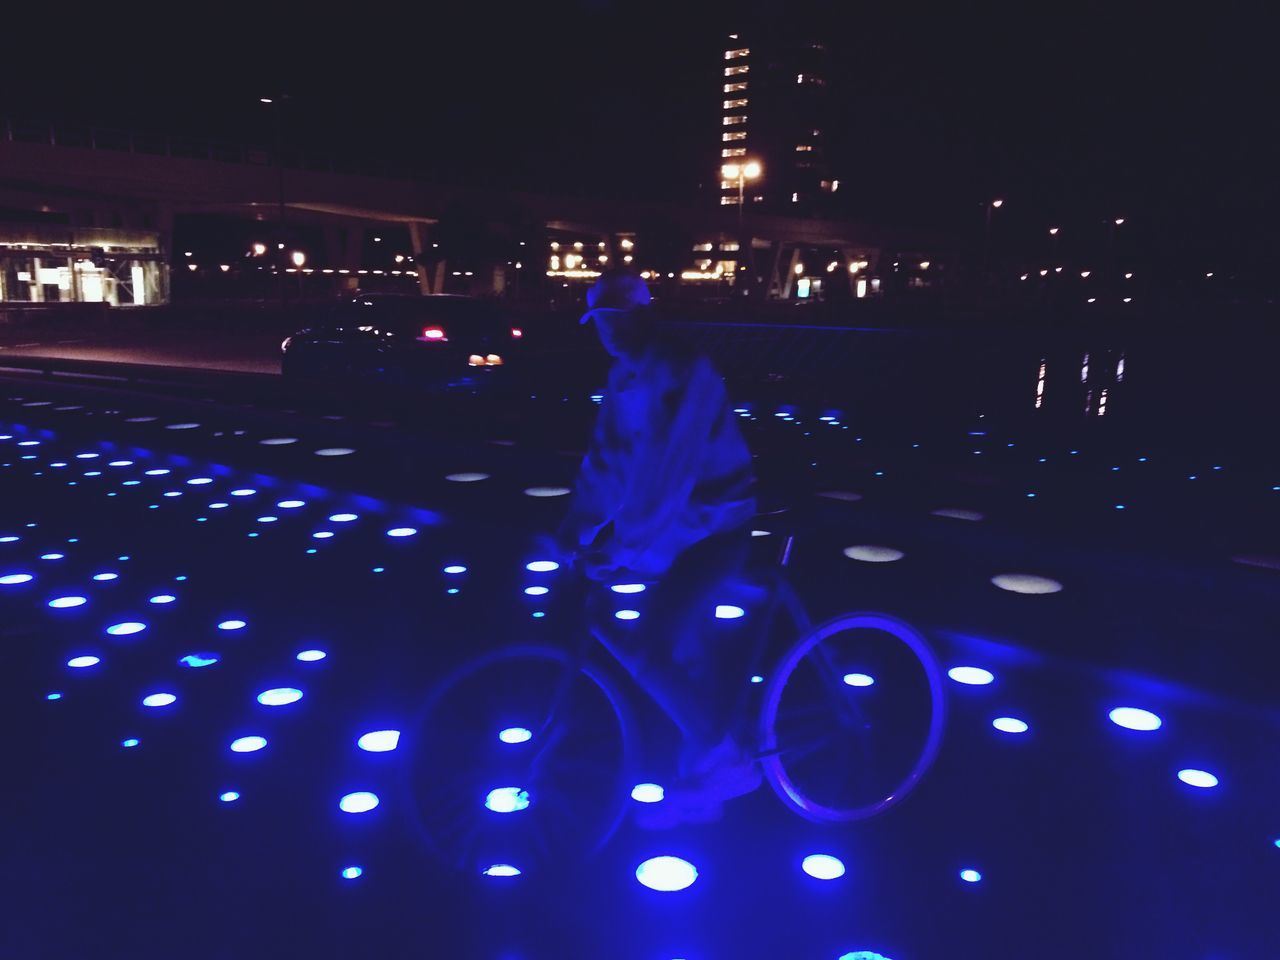 Check This Out That's Me Hanging Out Night Lights Fashion Fashion Photography Fashionista Fashion Forever Retro Bike Retro Bike Fashionist The Fashionist - 2016 EyeEm Awards Street Fashion